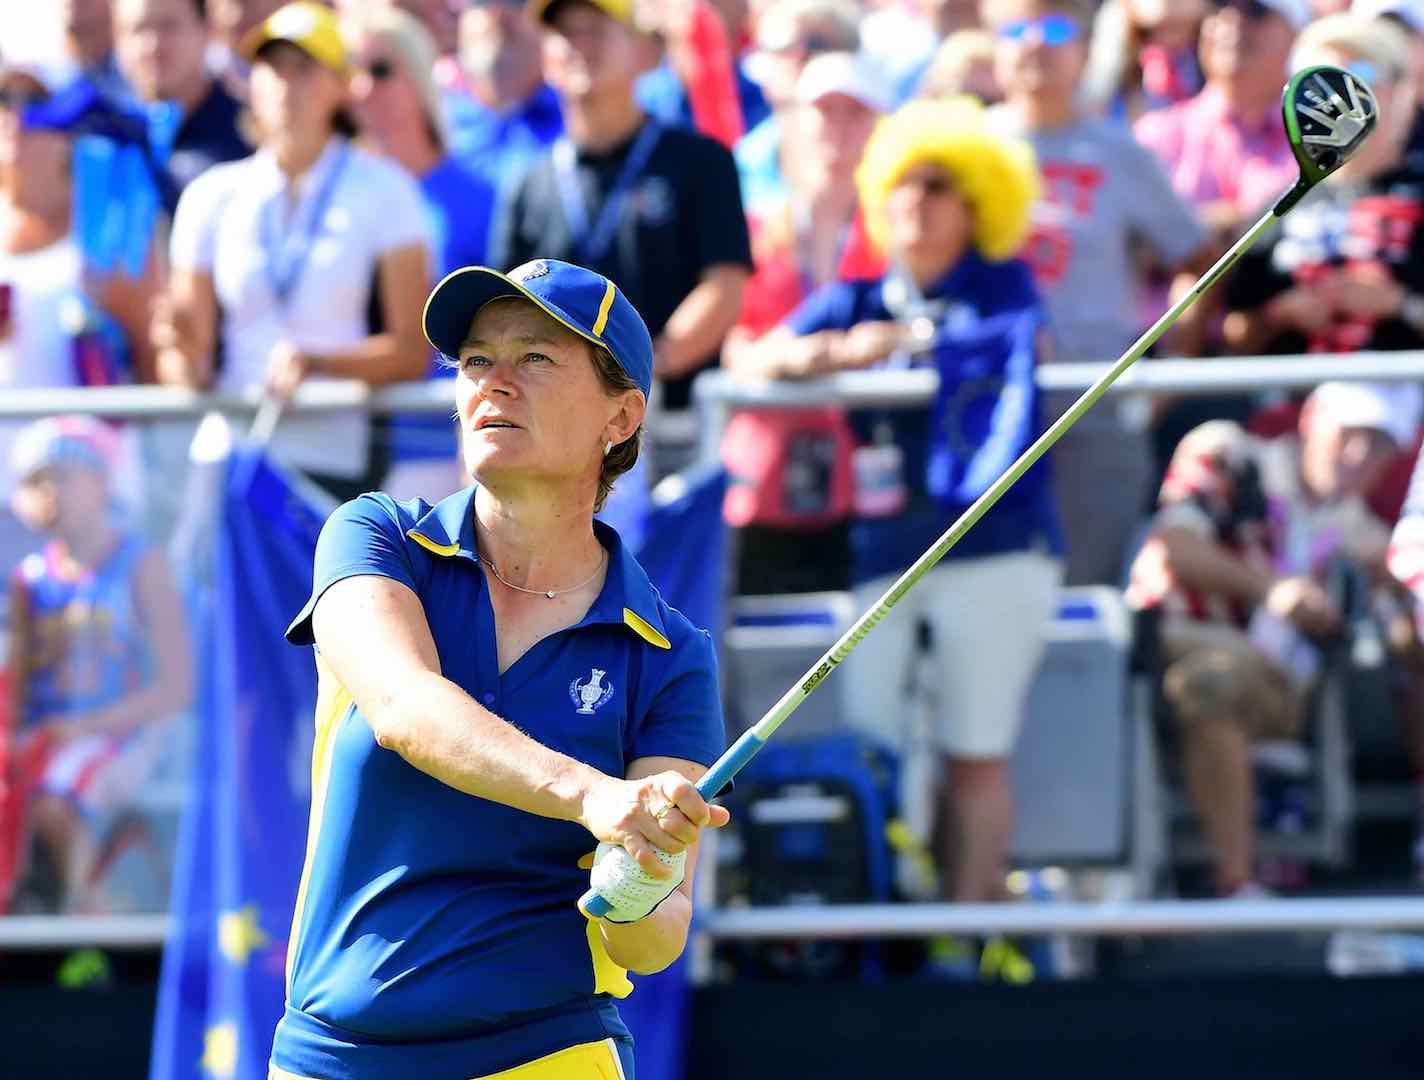 Tickets now on sale for the 2019 Solheim Cup